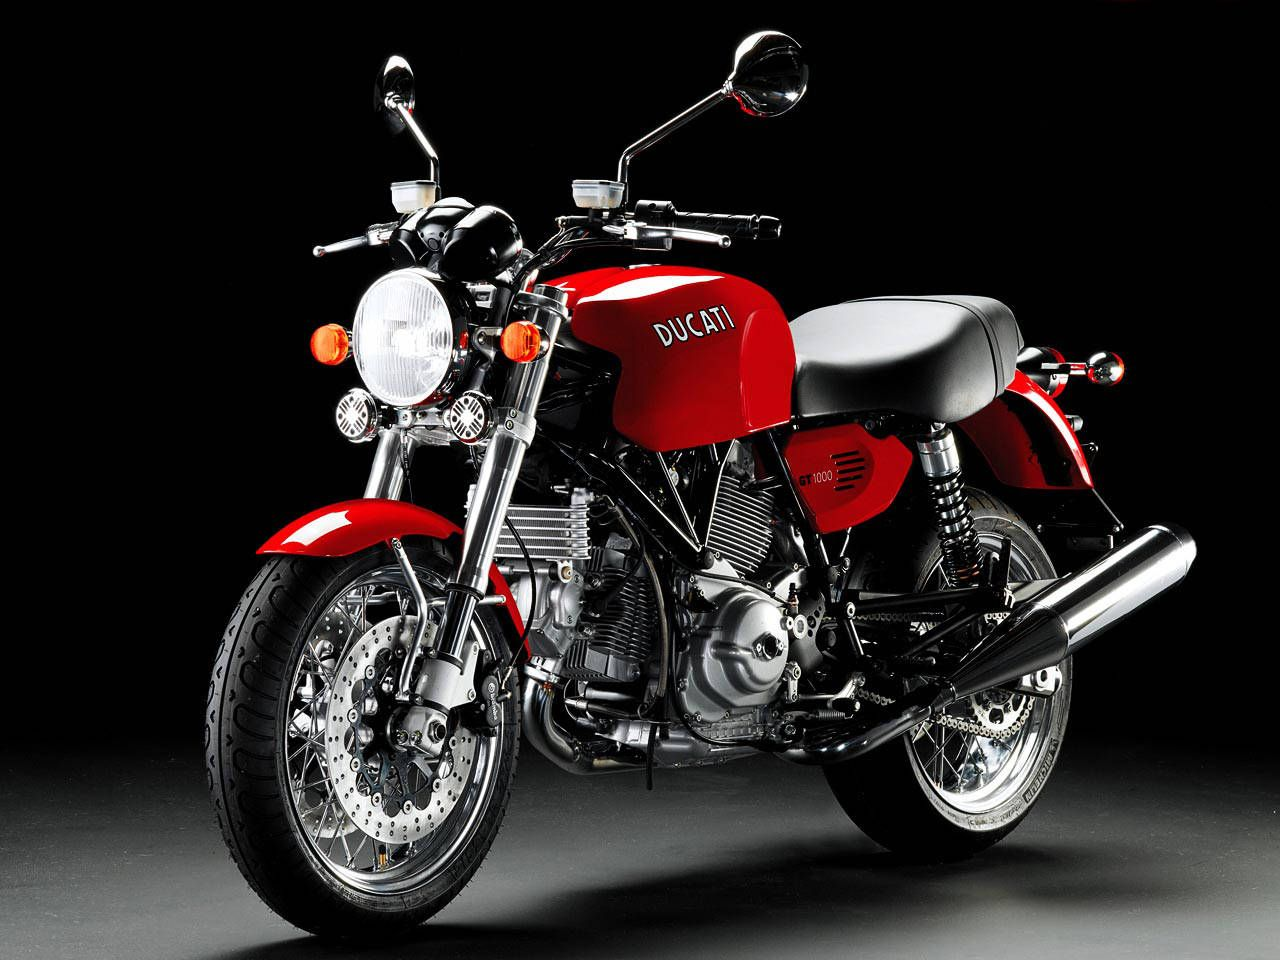 082613top I Cafe Racers Motorcycles Pinterest Ducati